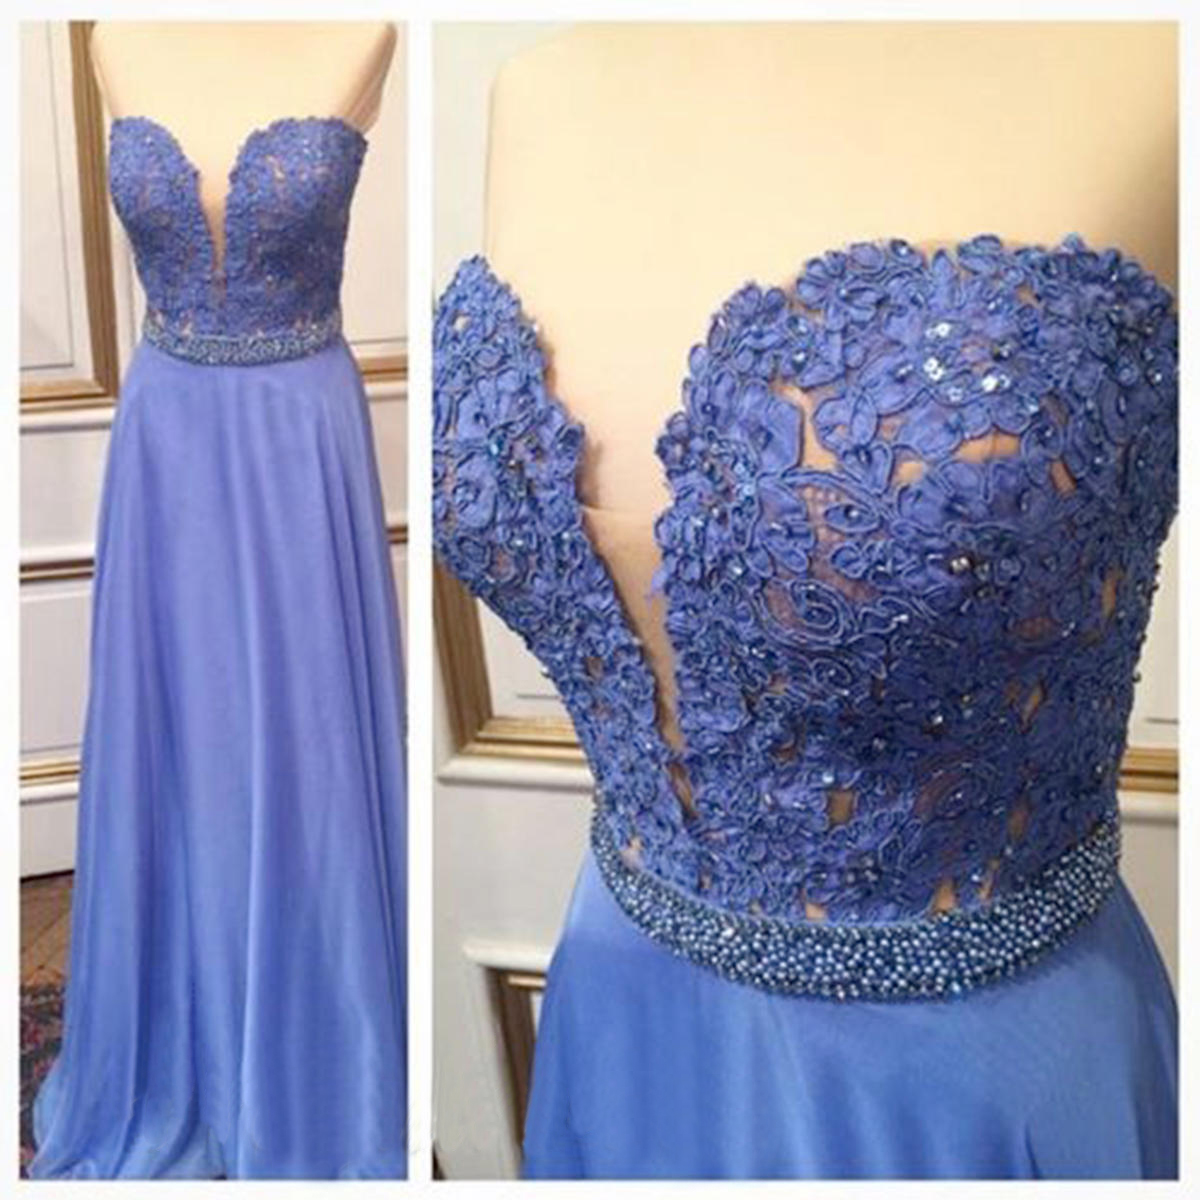 Charming Prom Dress,2016 A-Line Prom Dress,Chiffon Prom Dress,Lace Prom Dress,Sweetheart Evening Dress